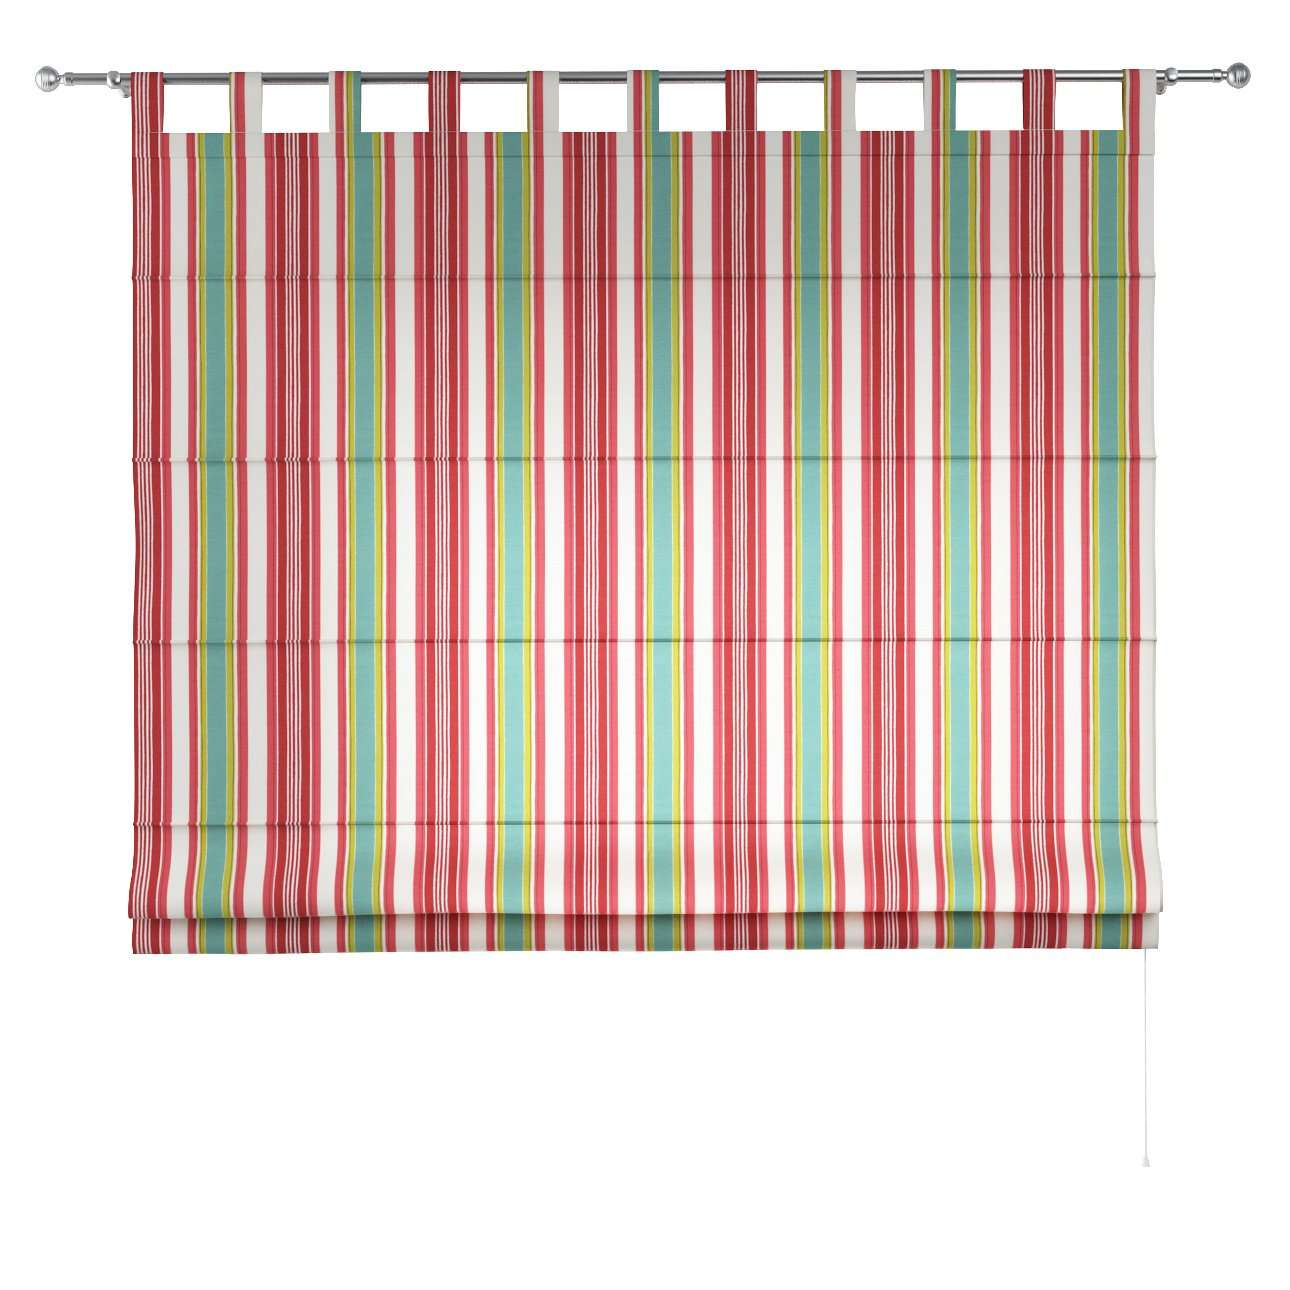 Verona tab top roman blind in collection Londres, fabric: 122-01